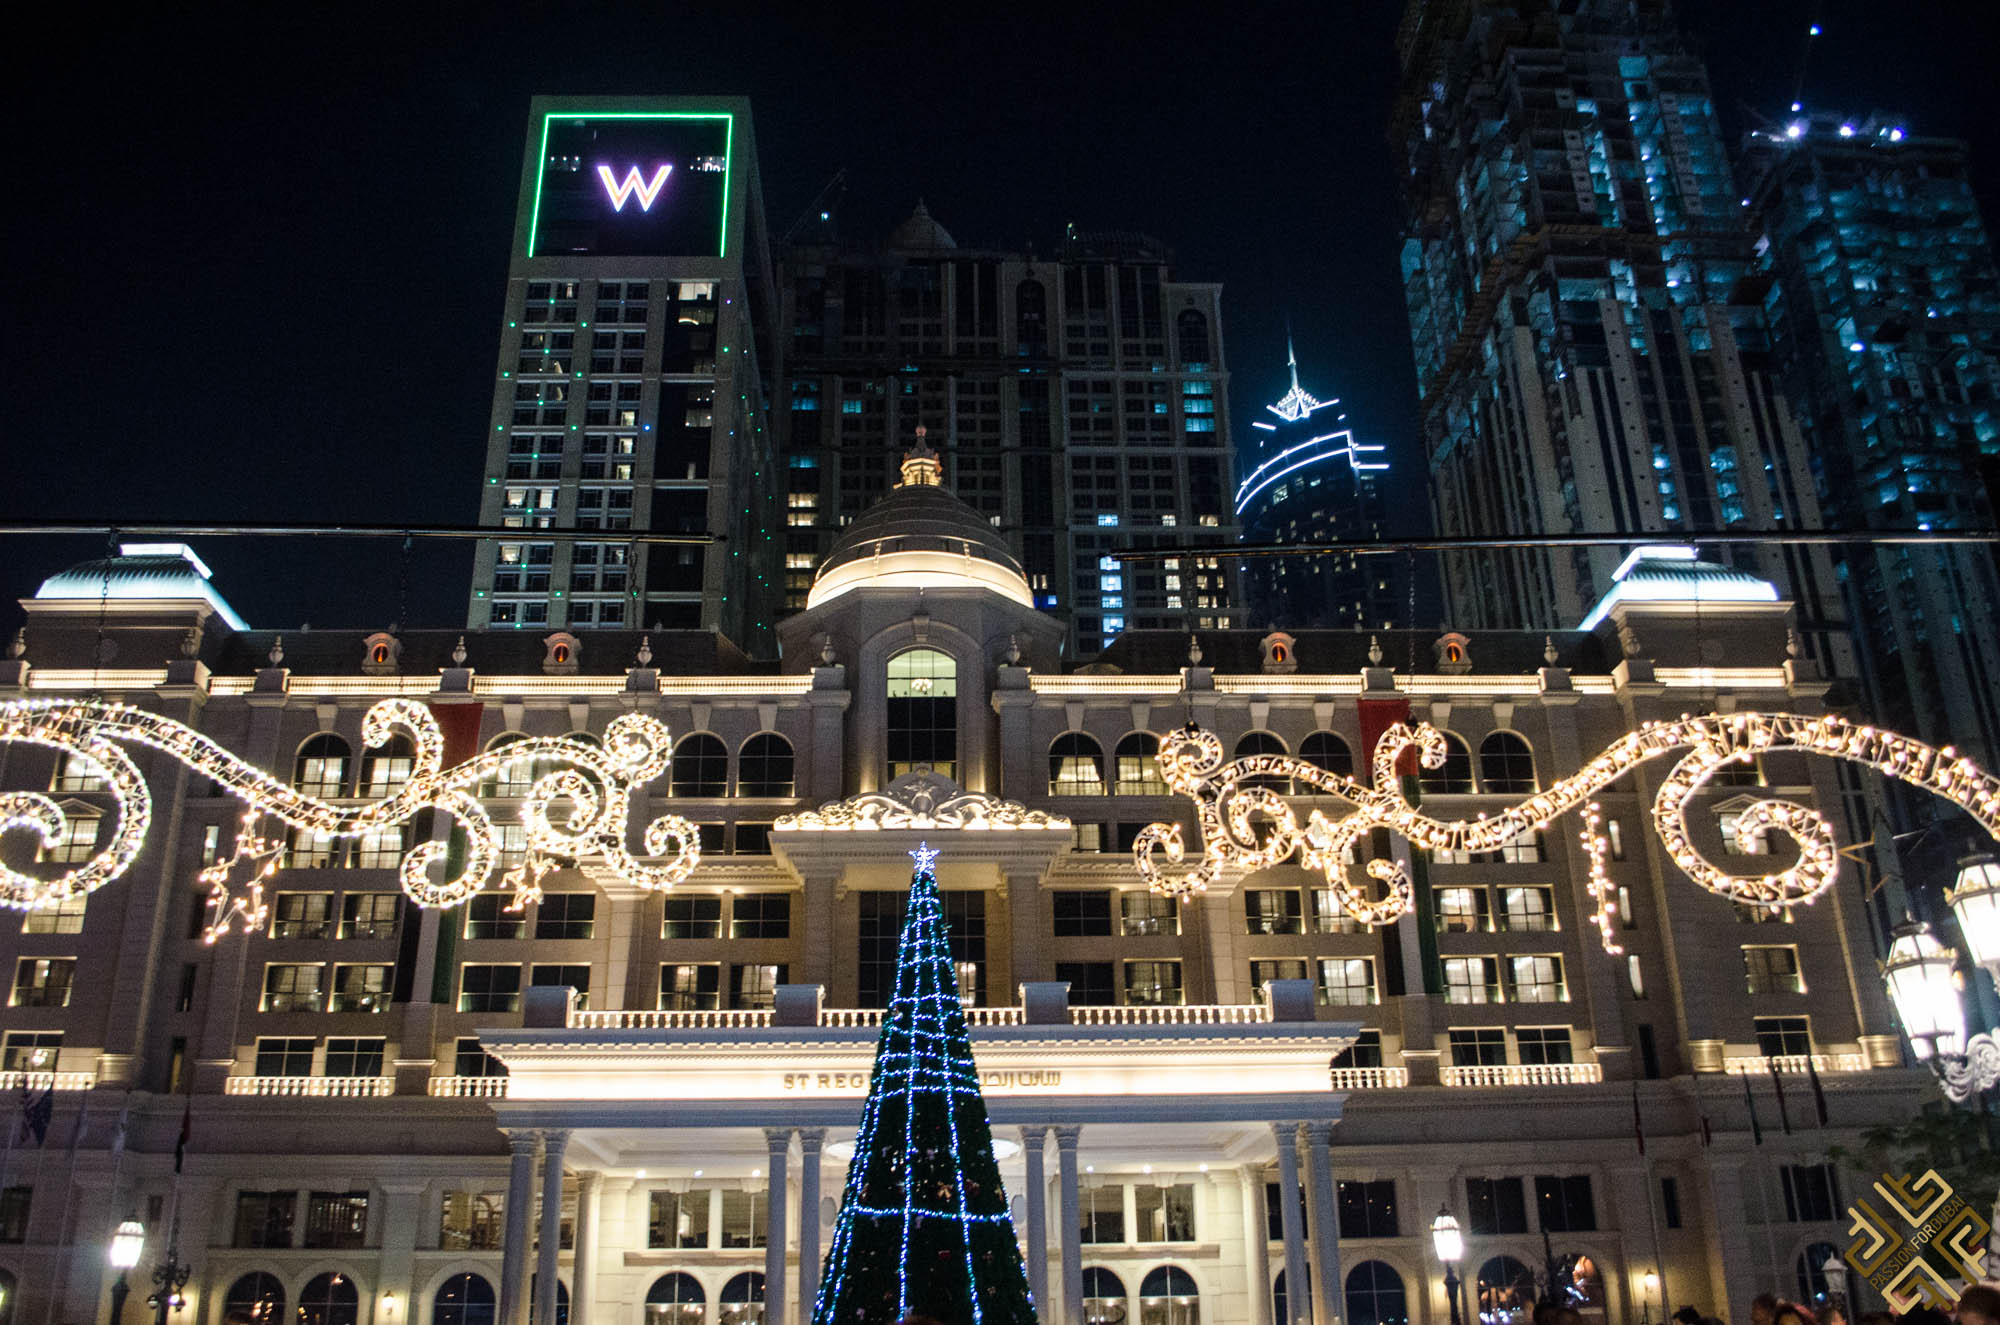 winter garden market at st regis dubai al habtoor city passion